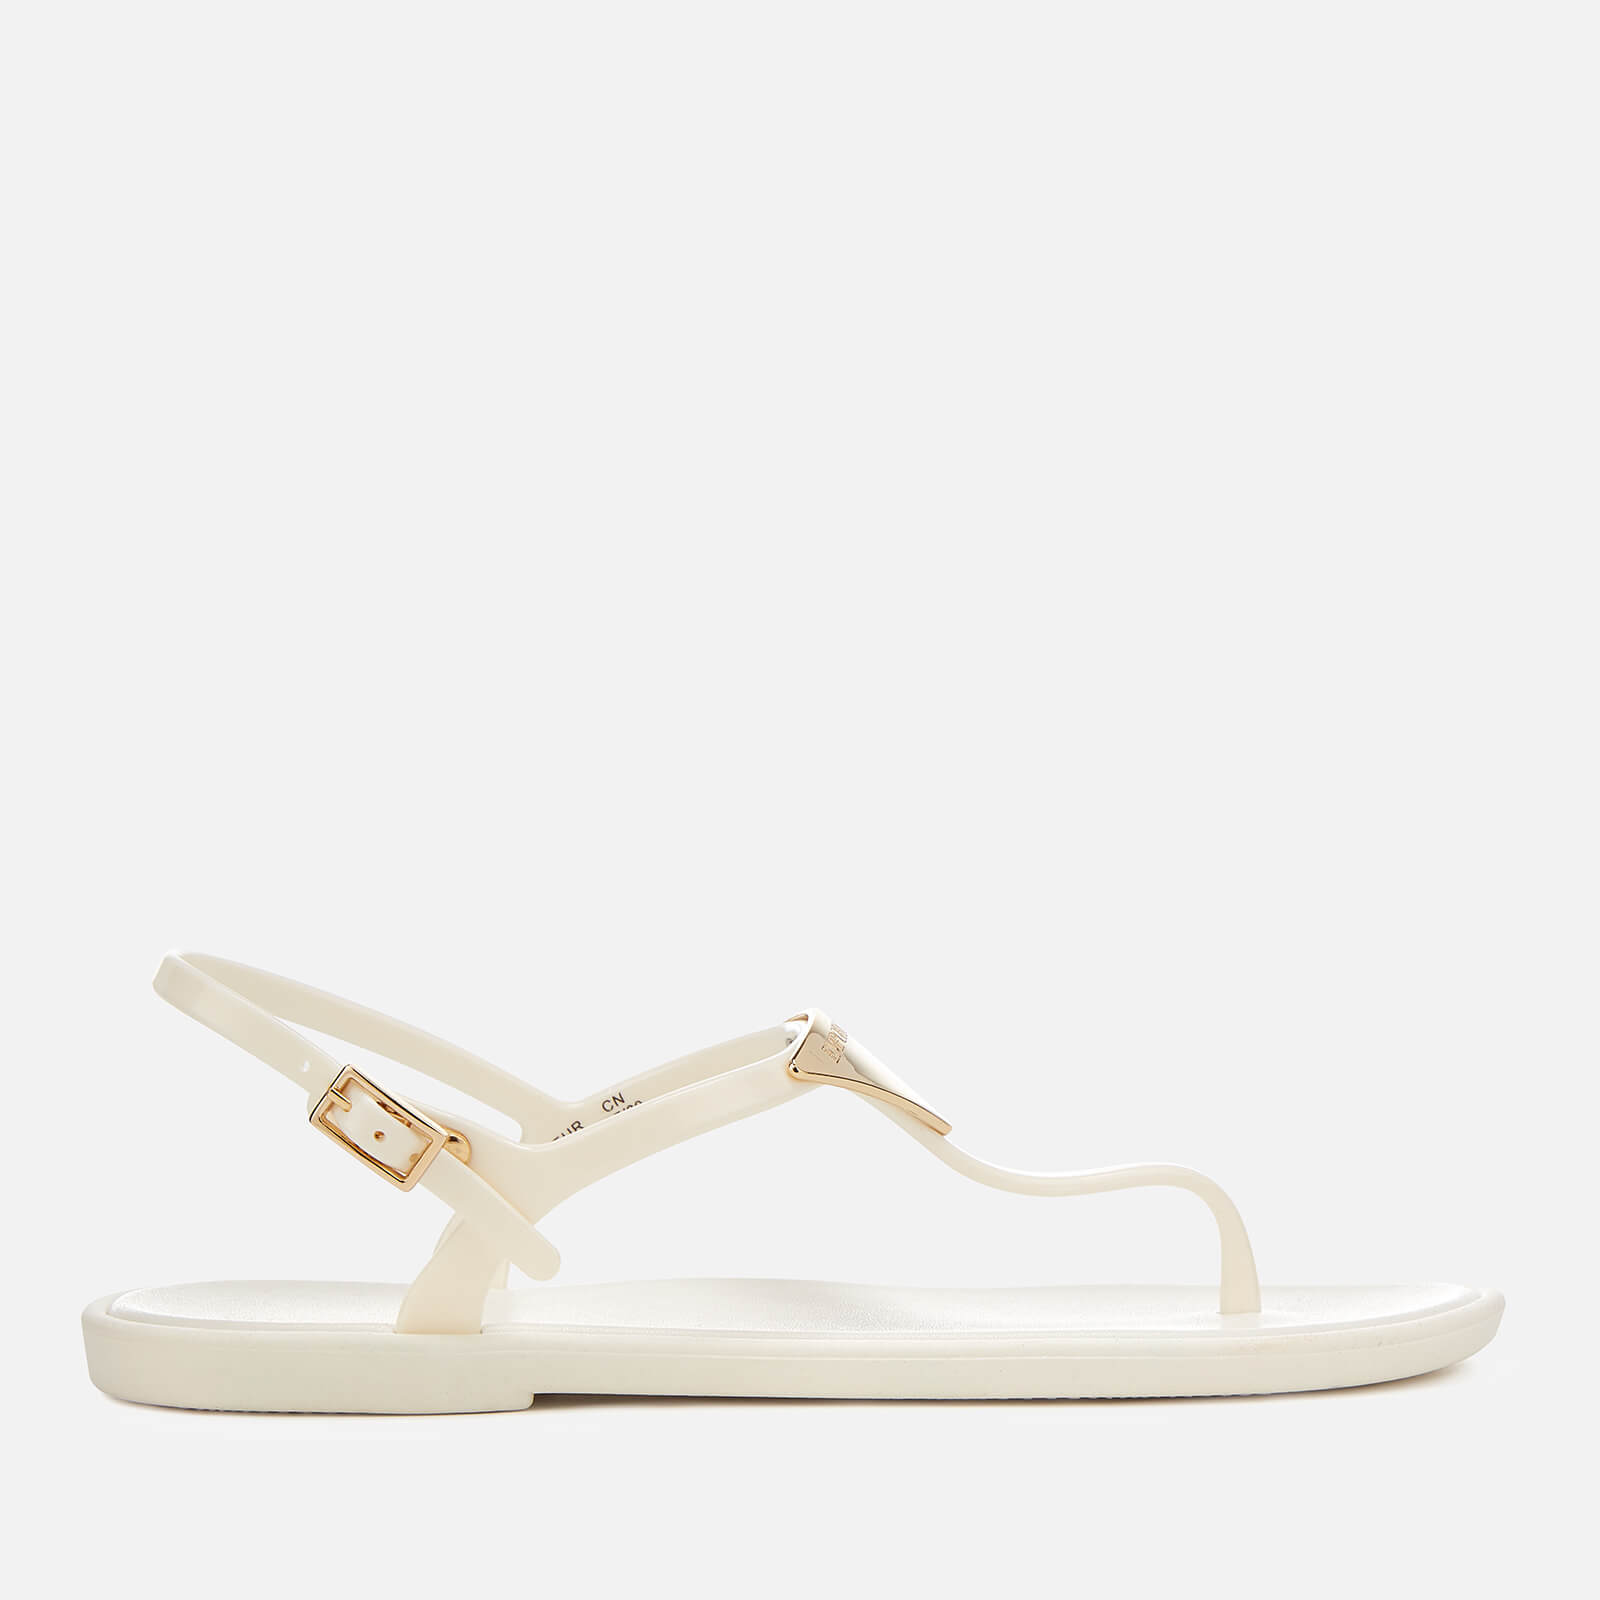 a7bd4b90ef9da1 Emporio Armani Women s Coqui Soft Jelly Sandals - Off White - Free UK  Delivery over £50